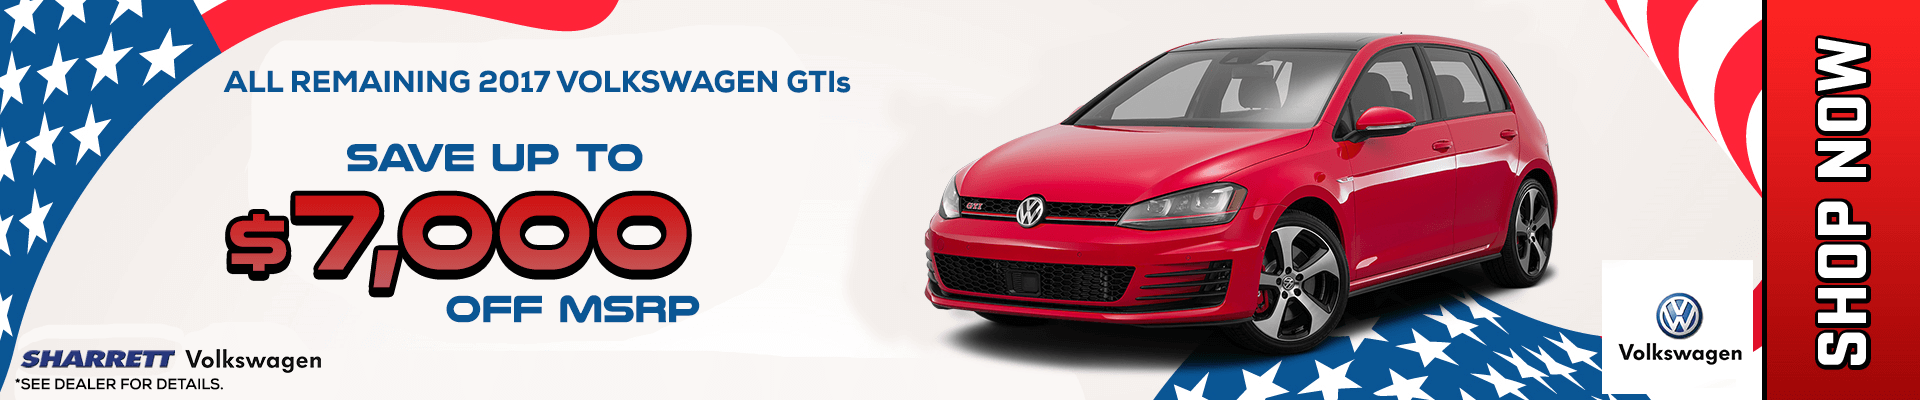 2017 Volkswagen GTIs For Sale